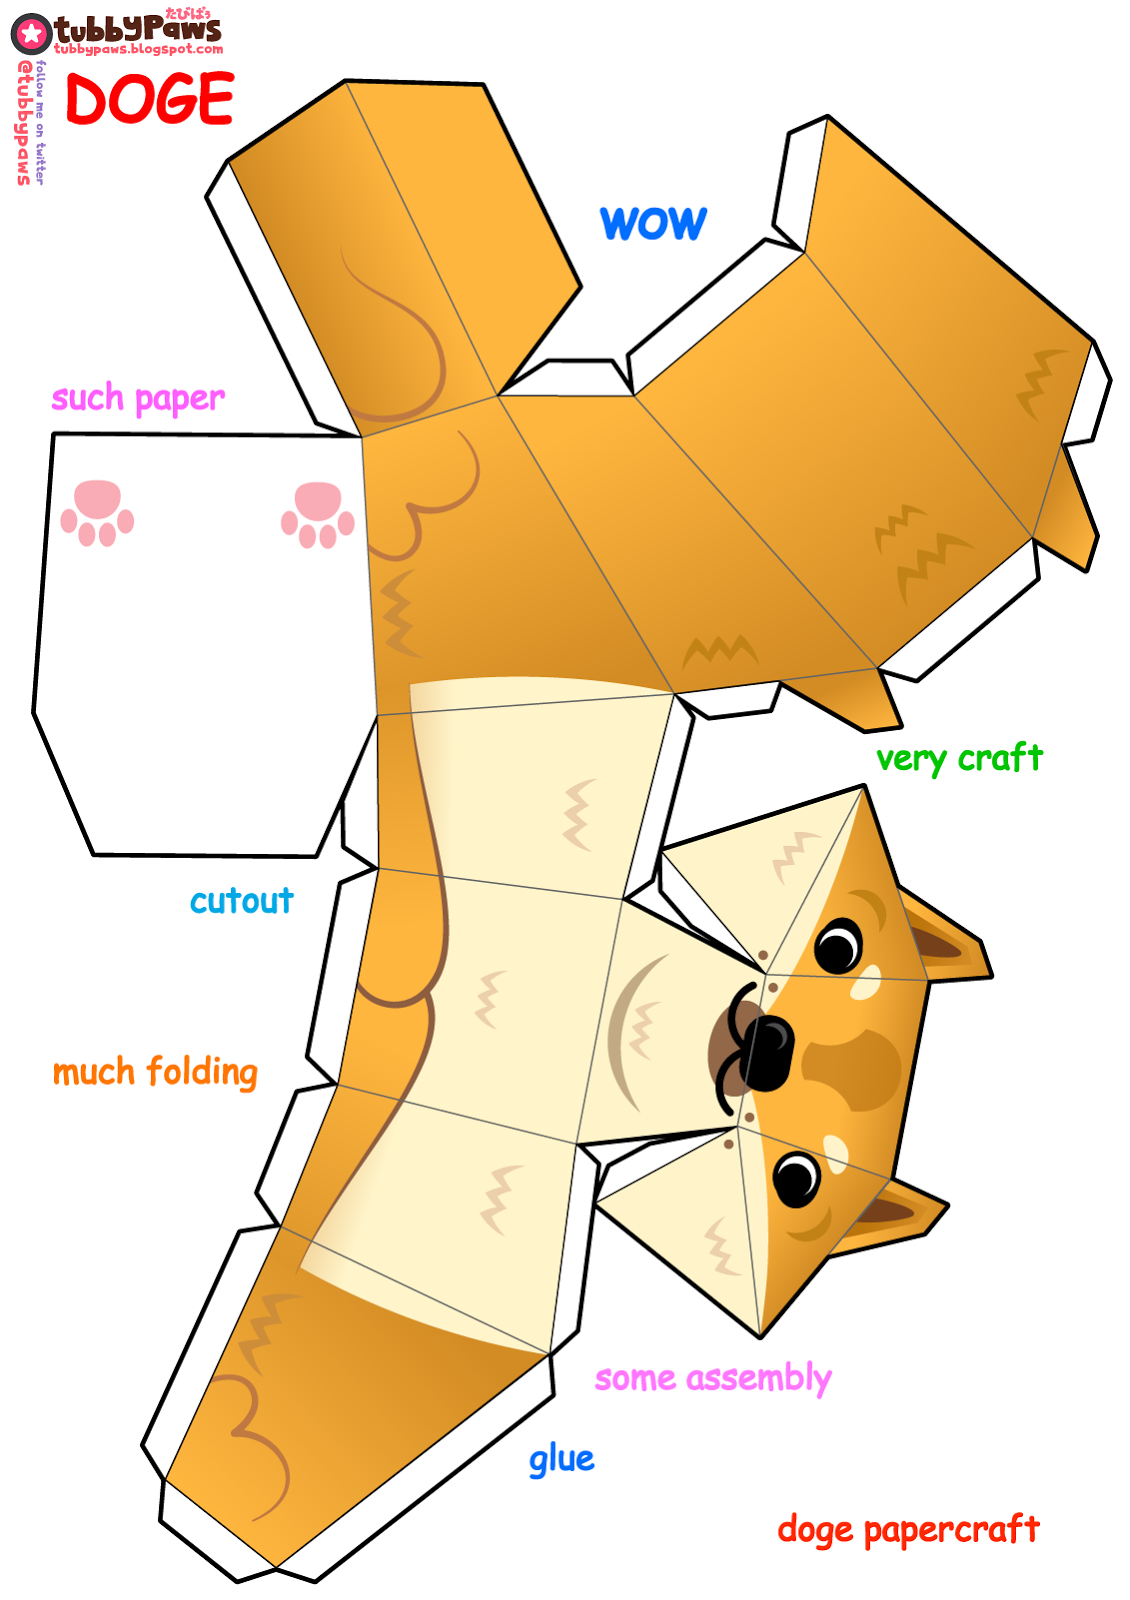 Wow, Such Paper, Very Craft. Tubbypaws Presents A Happy à Paper Toy A Imprimer